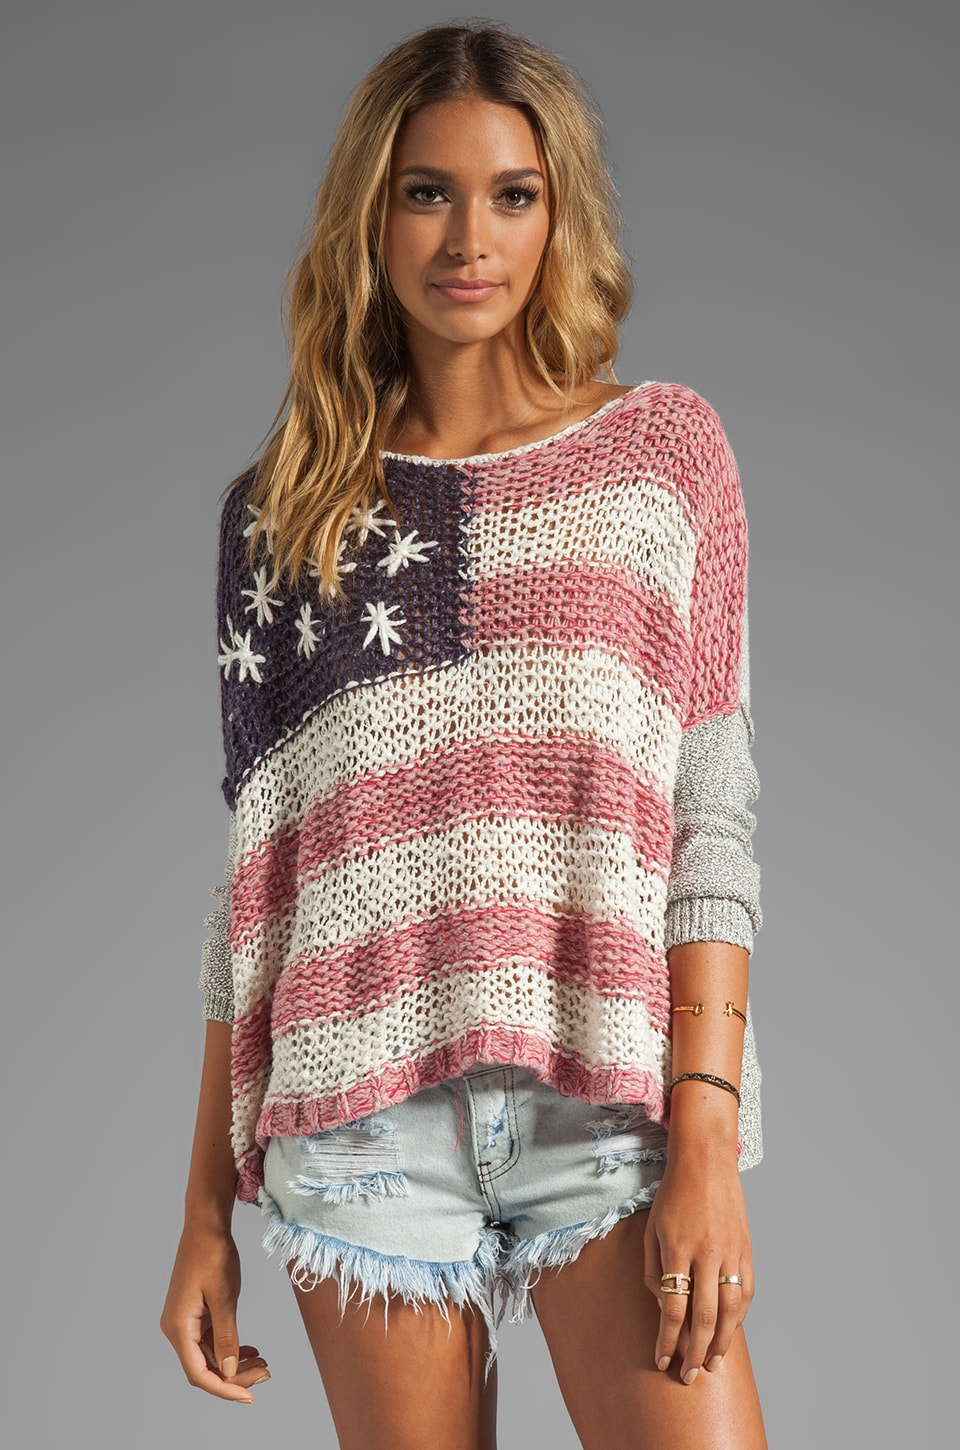 Free People Flag Sweater in Red/White/Blue